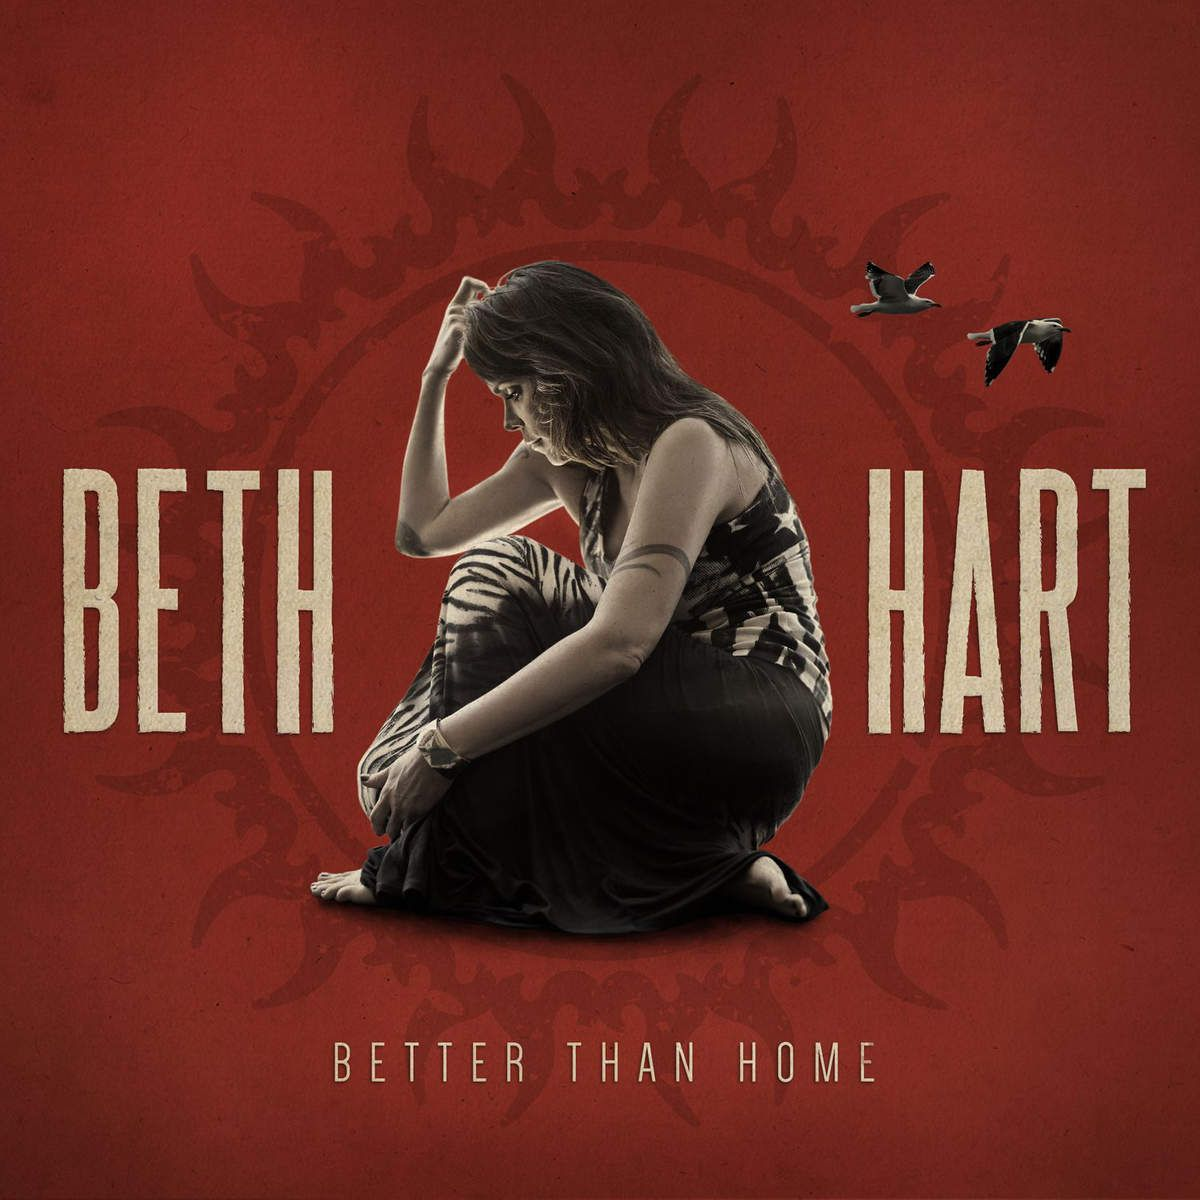 Beth Hart - Better Than Home album cover